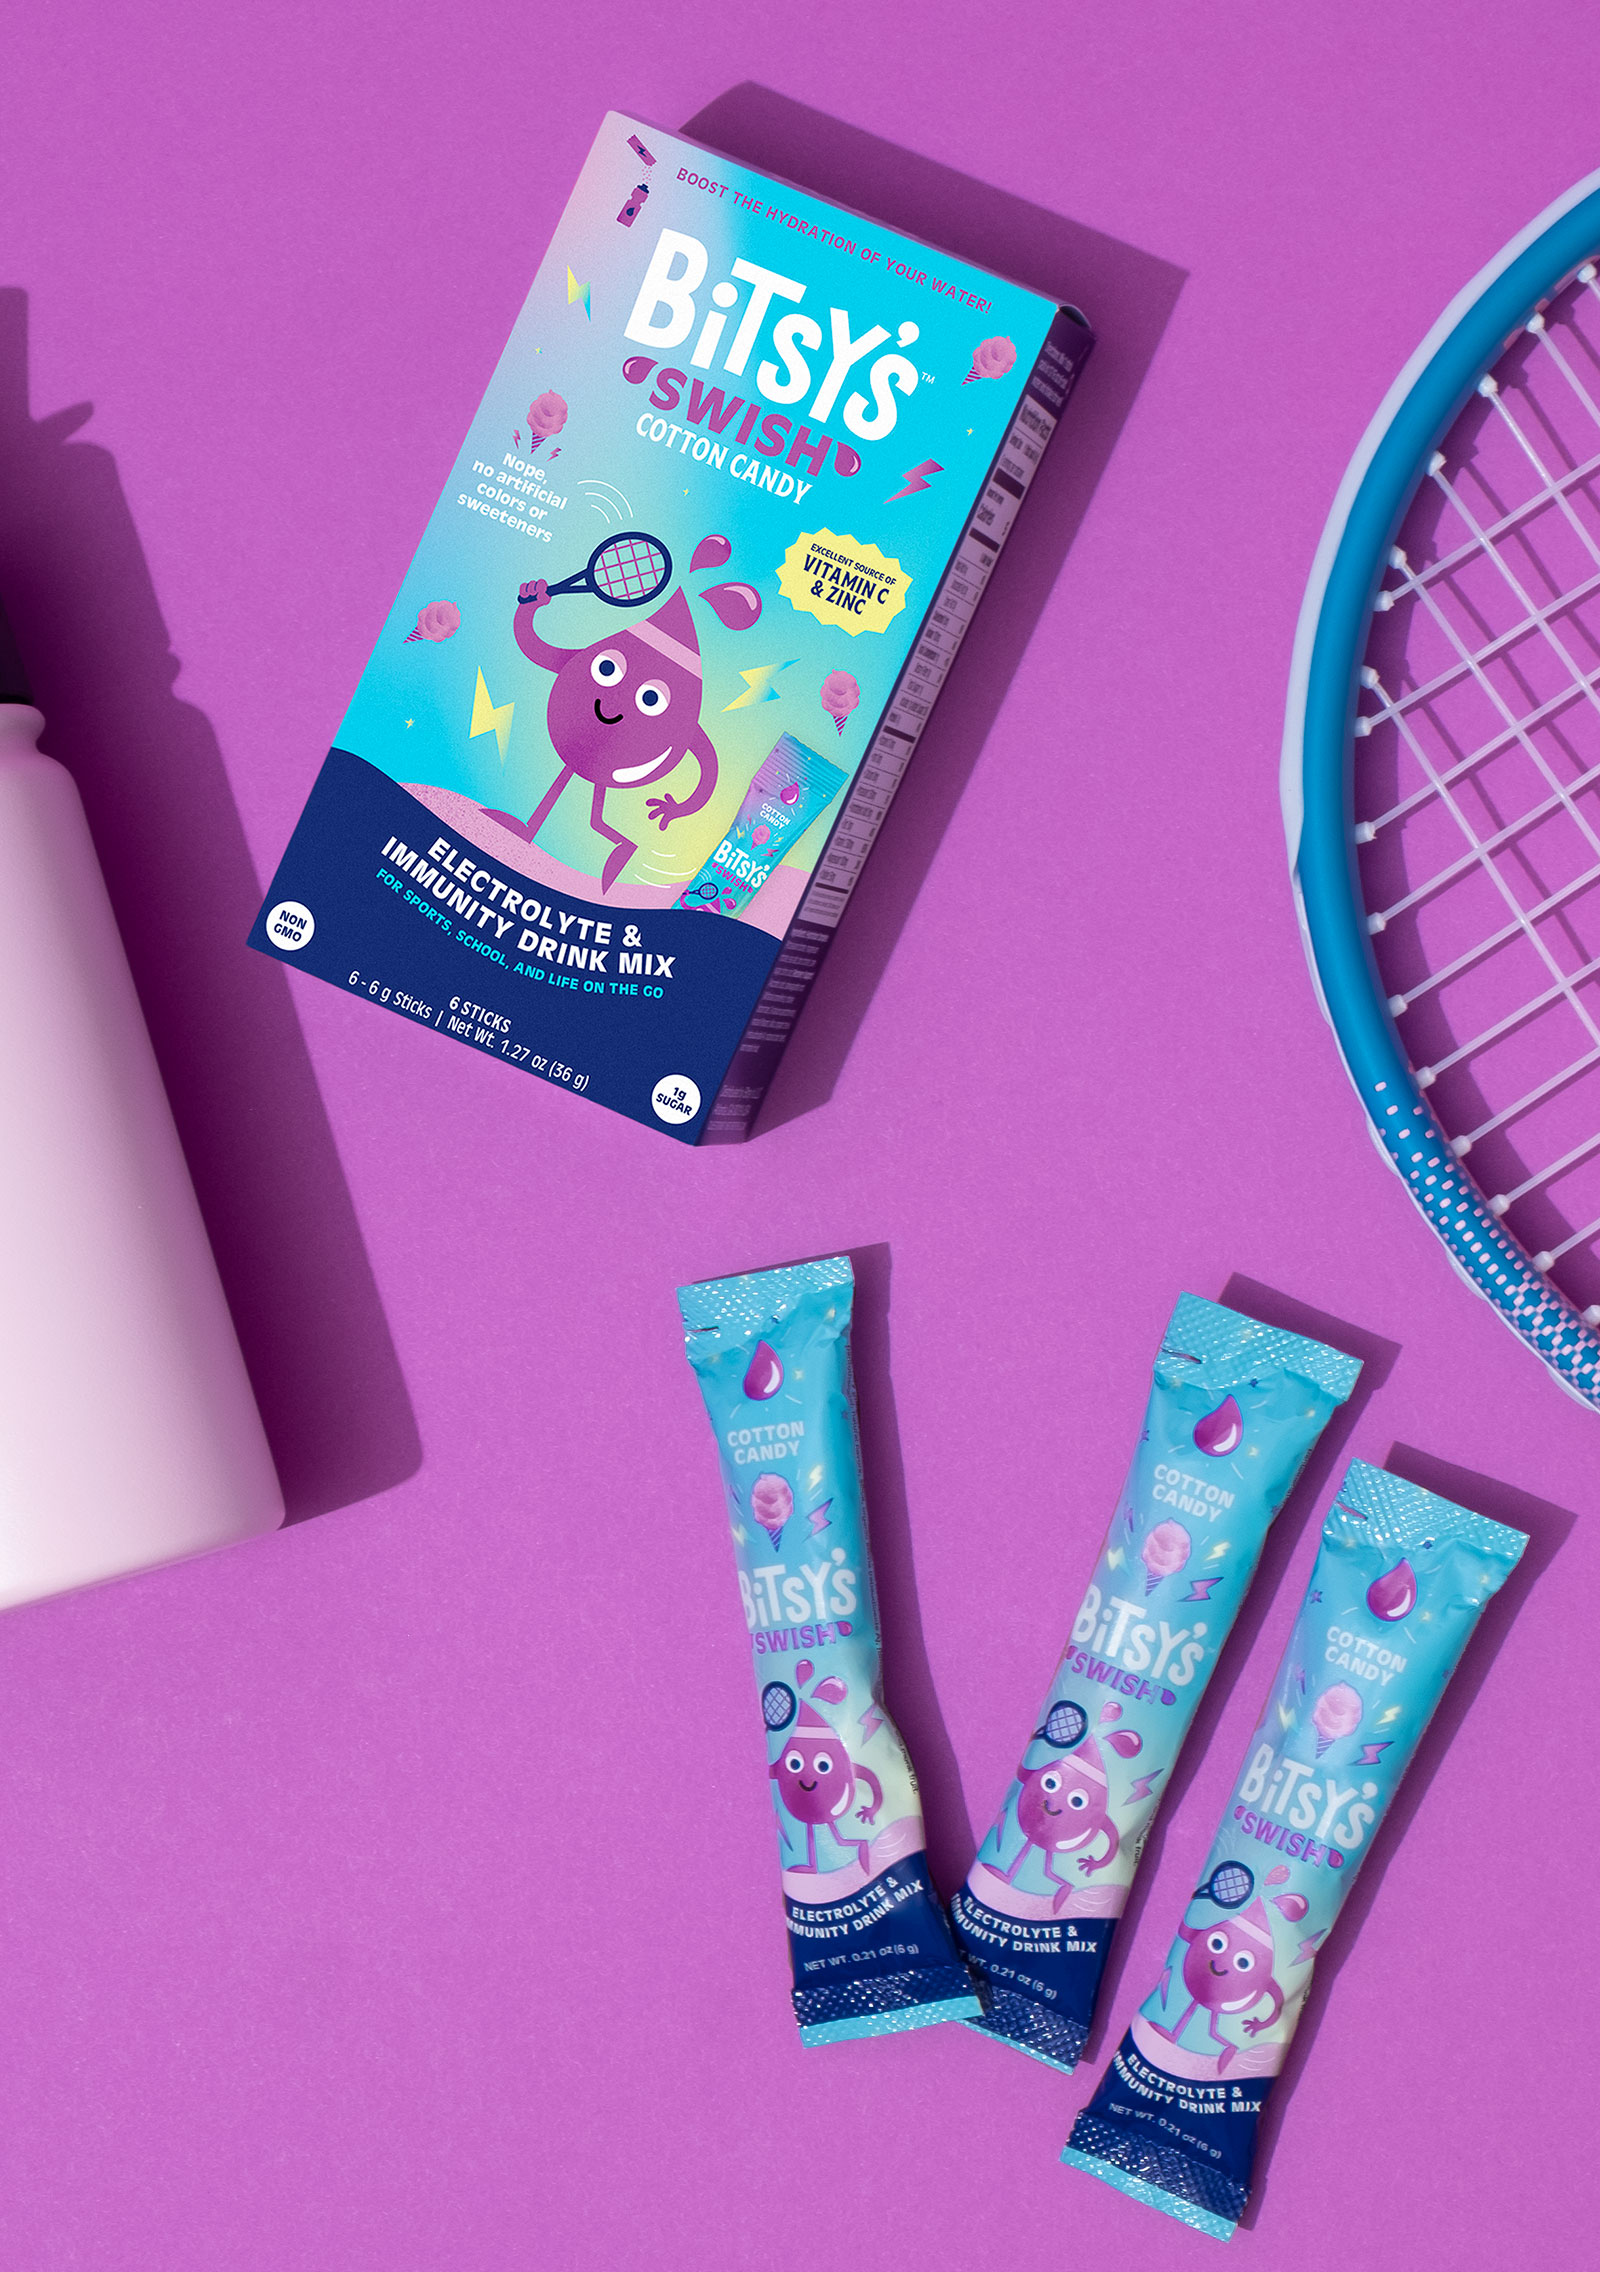 Bitsy's Swish packaging in a lifestyle photo